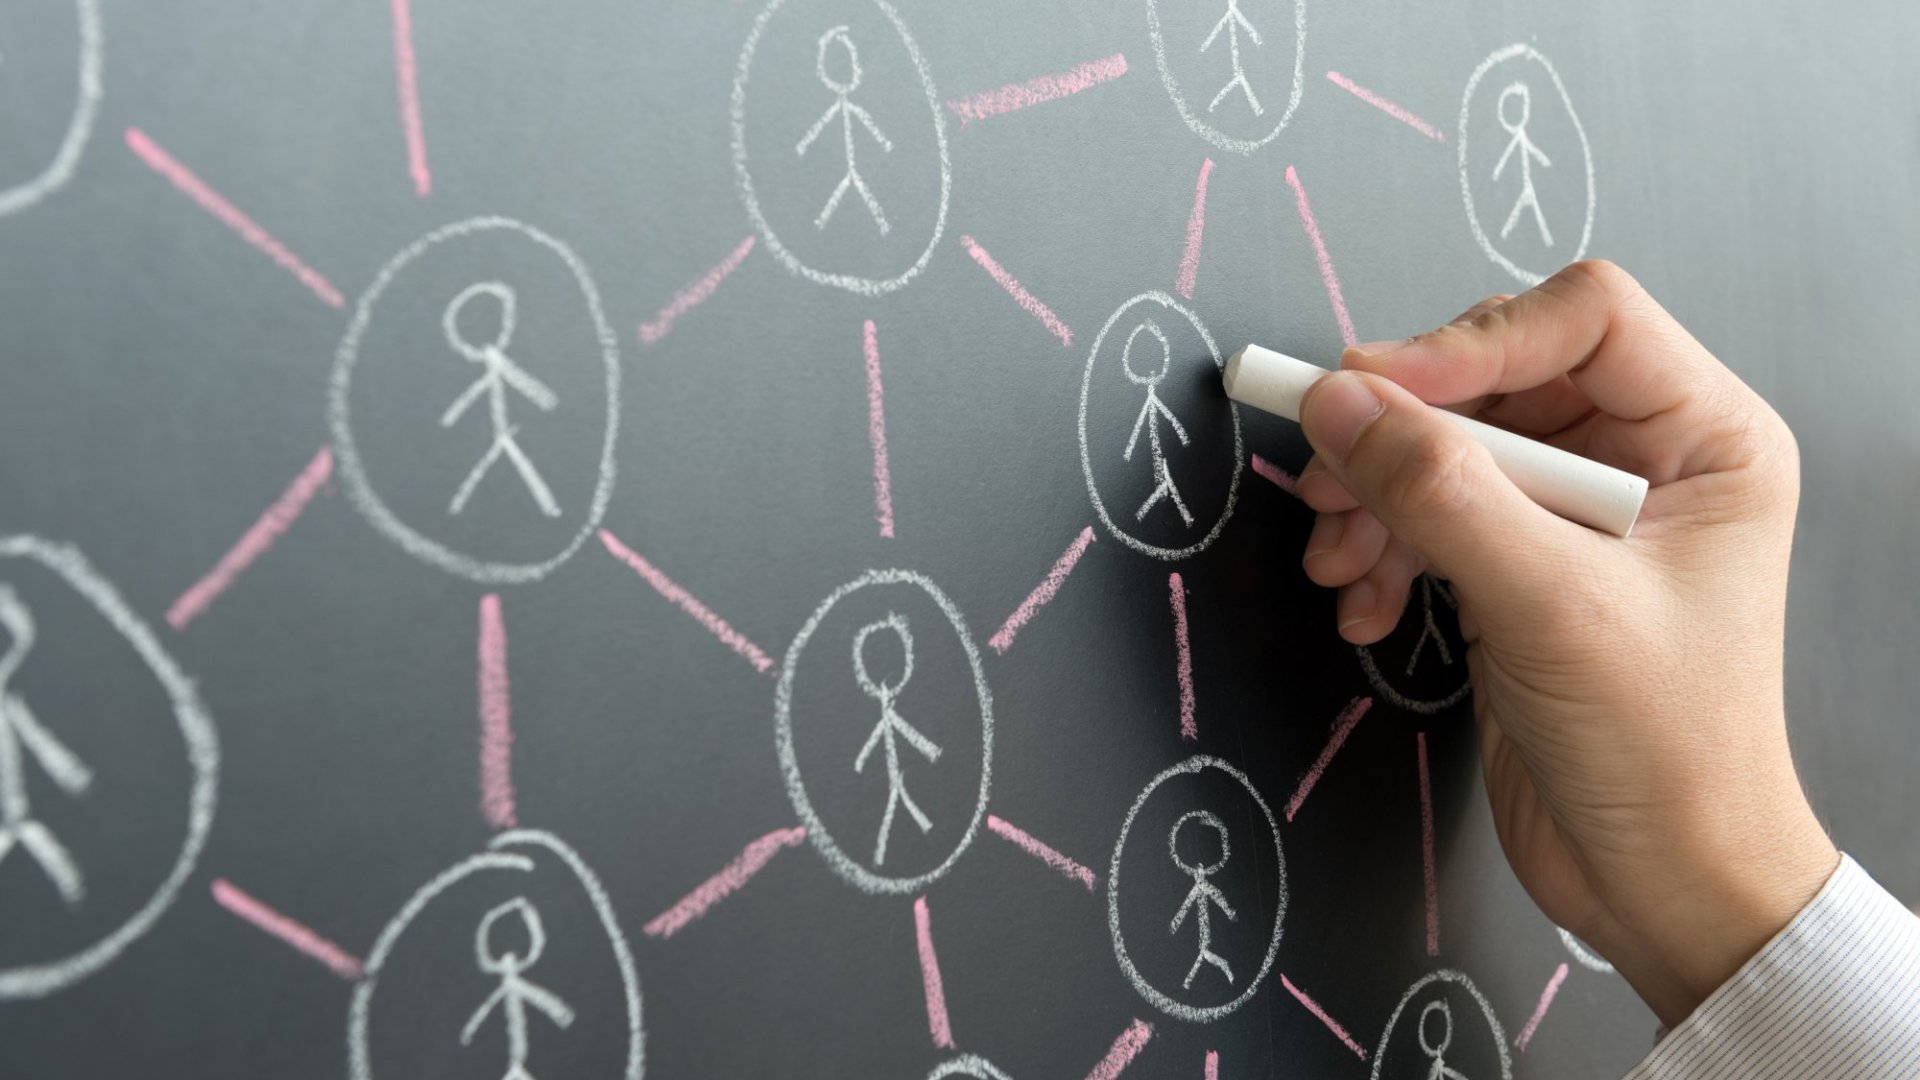 Leverage Your Network to Find Your Next Side Hustle